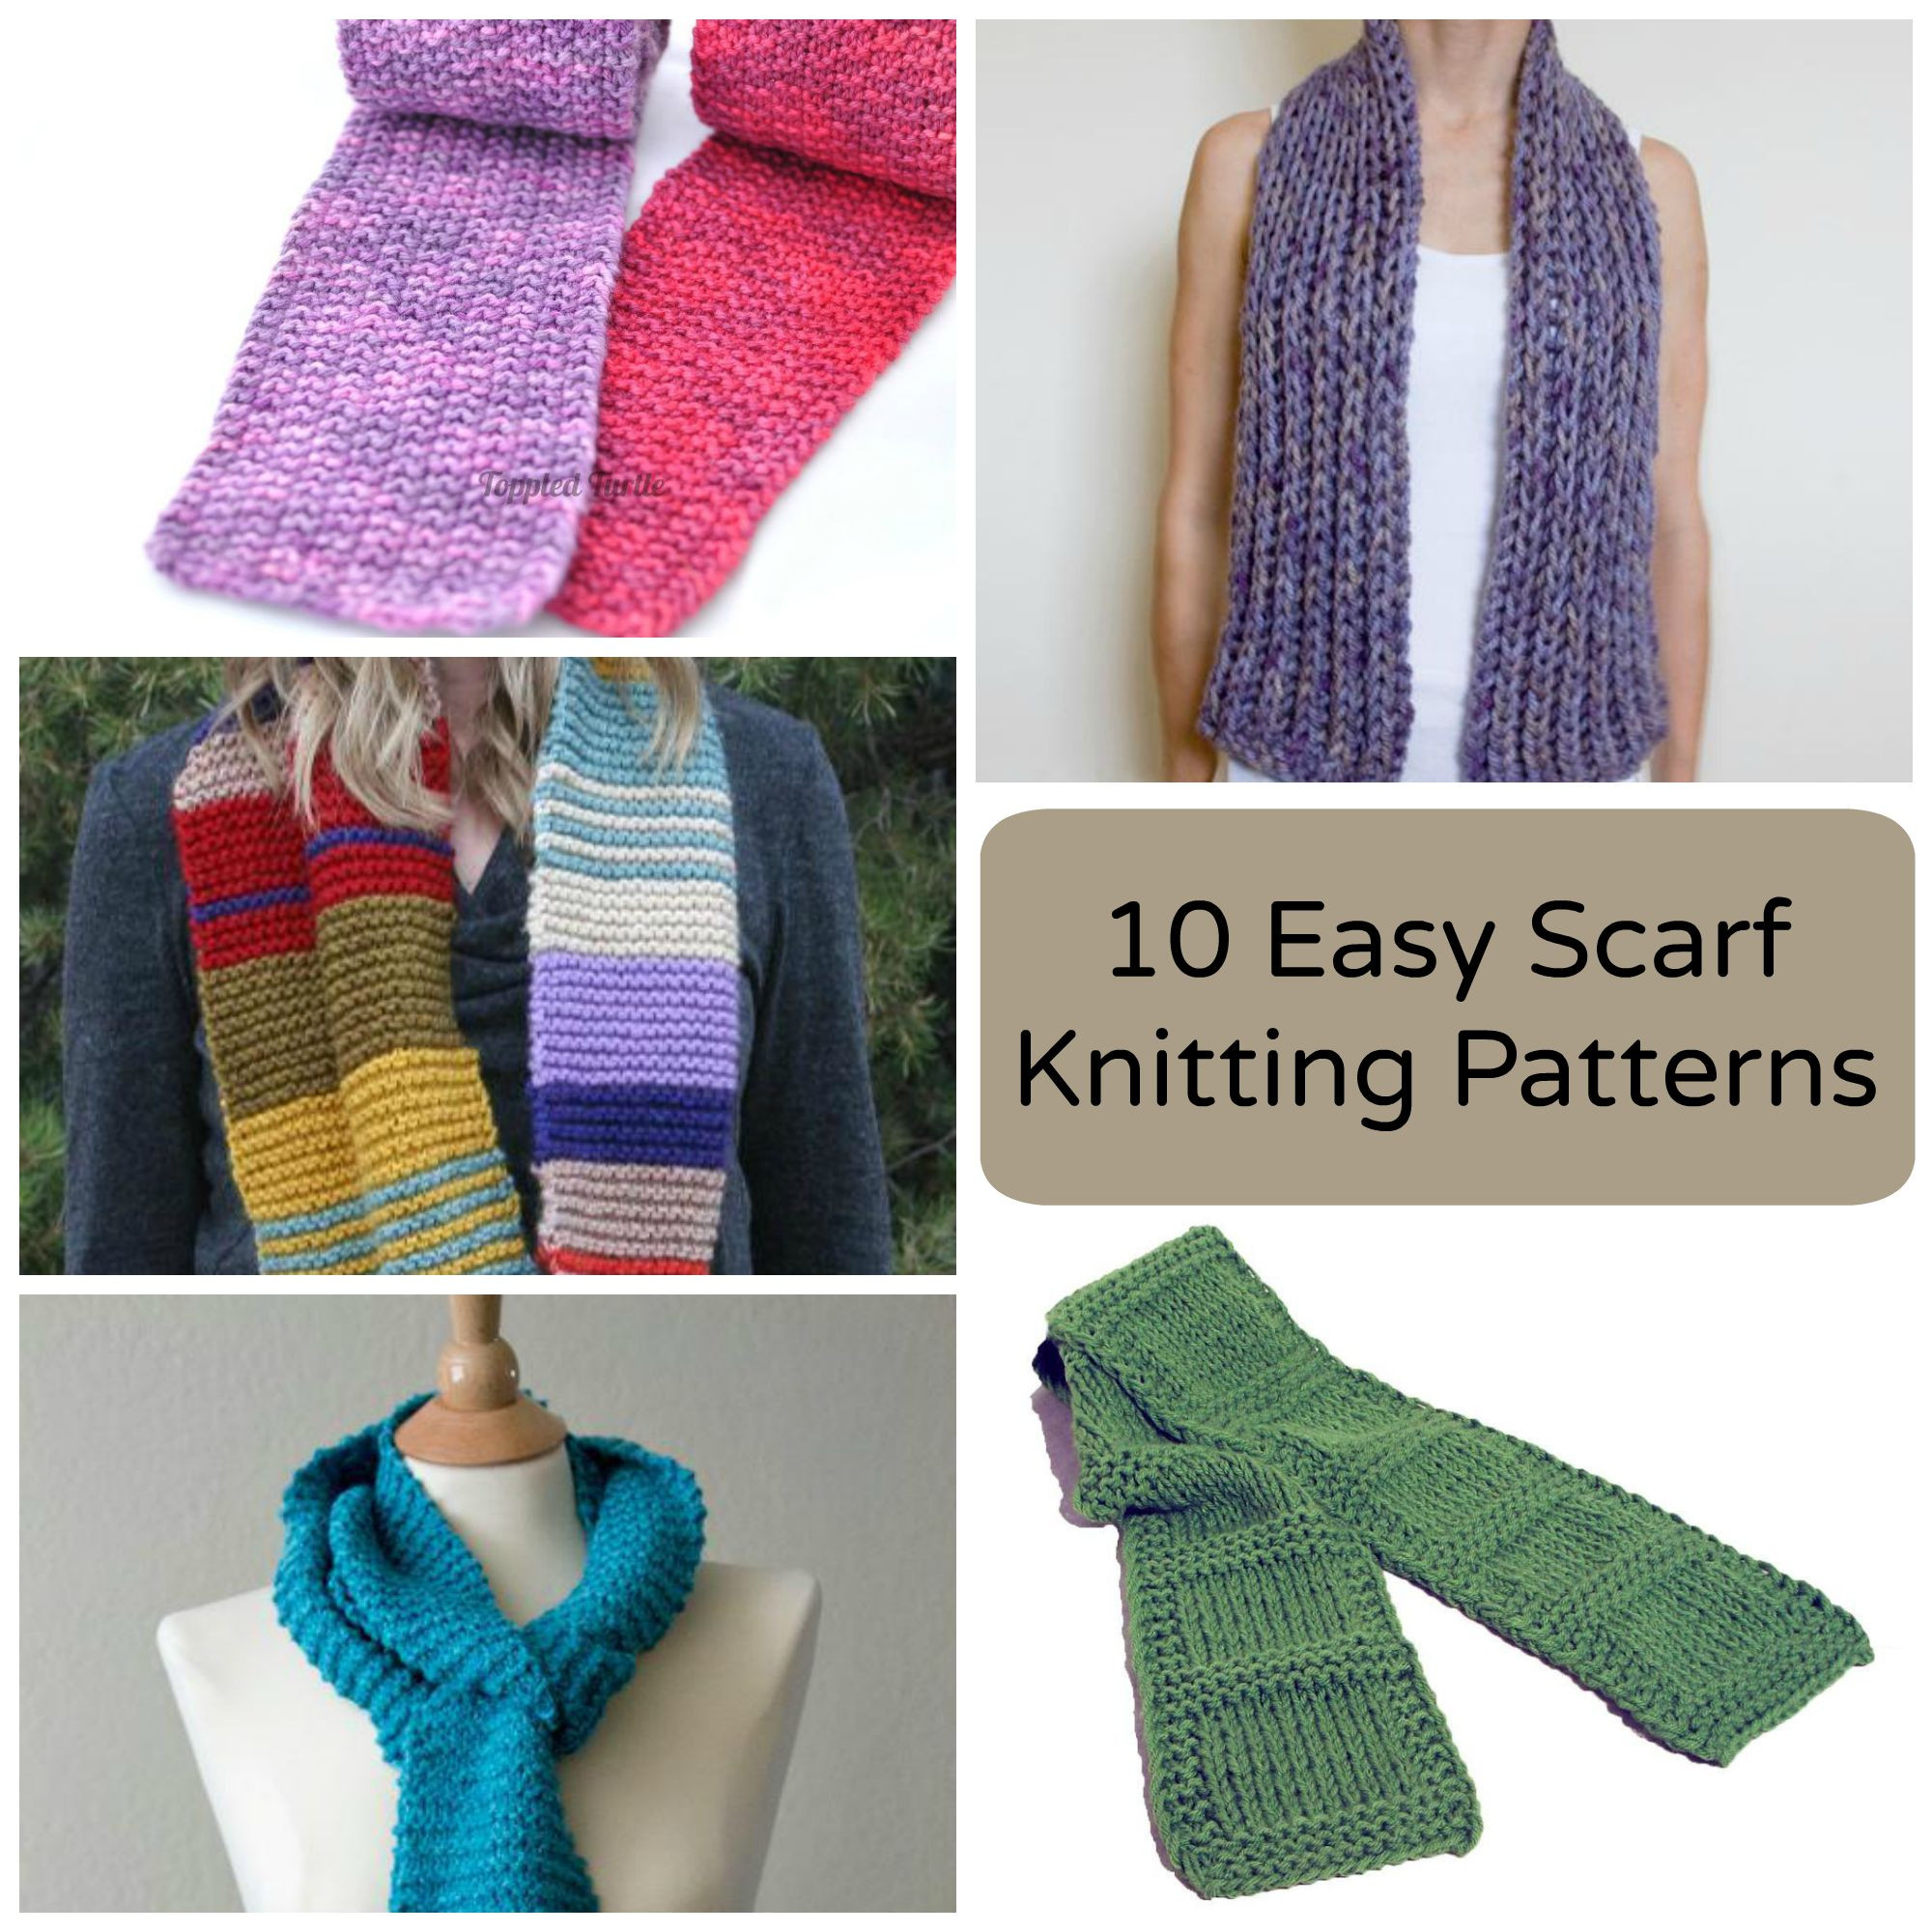 Free Scarf Knitting Patterns Best Of 10 Easy Scarf Knitting Patterns for Beginners Of Innovative 40 Pics Free Scarf Knitting Patterns